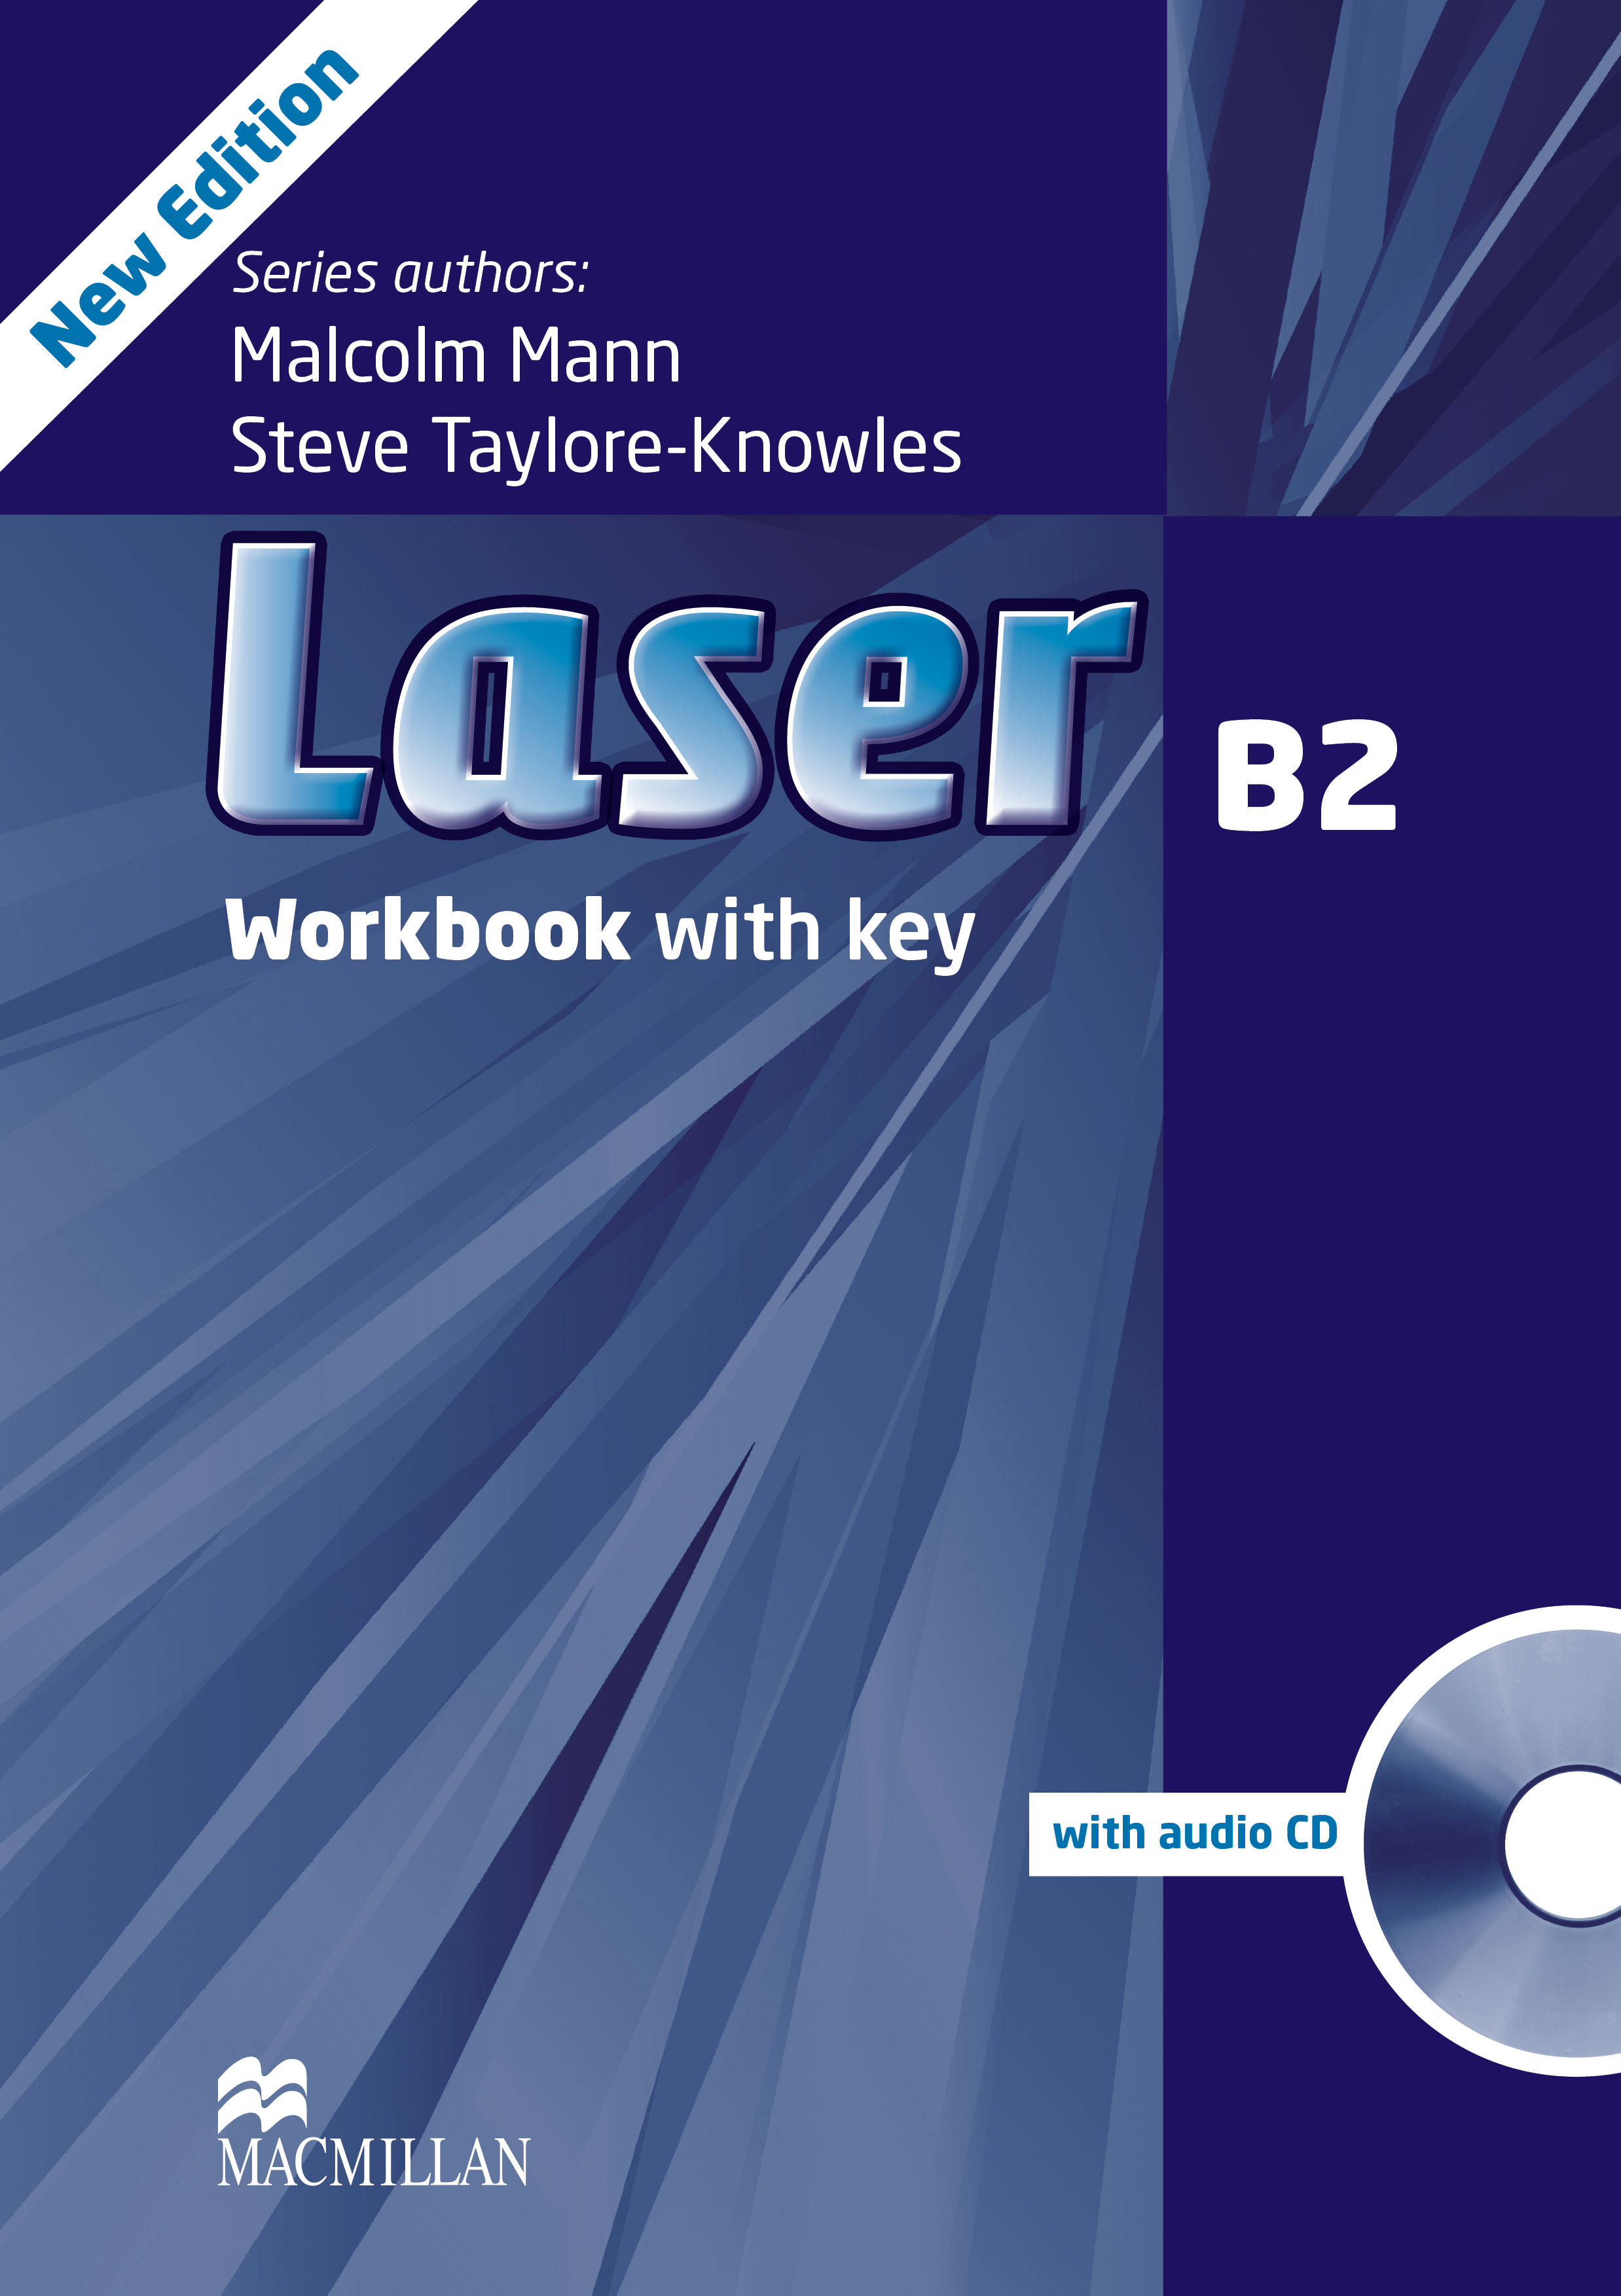 Laser B2 Third Edition Workbook with Key and CD Pack